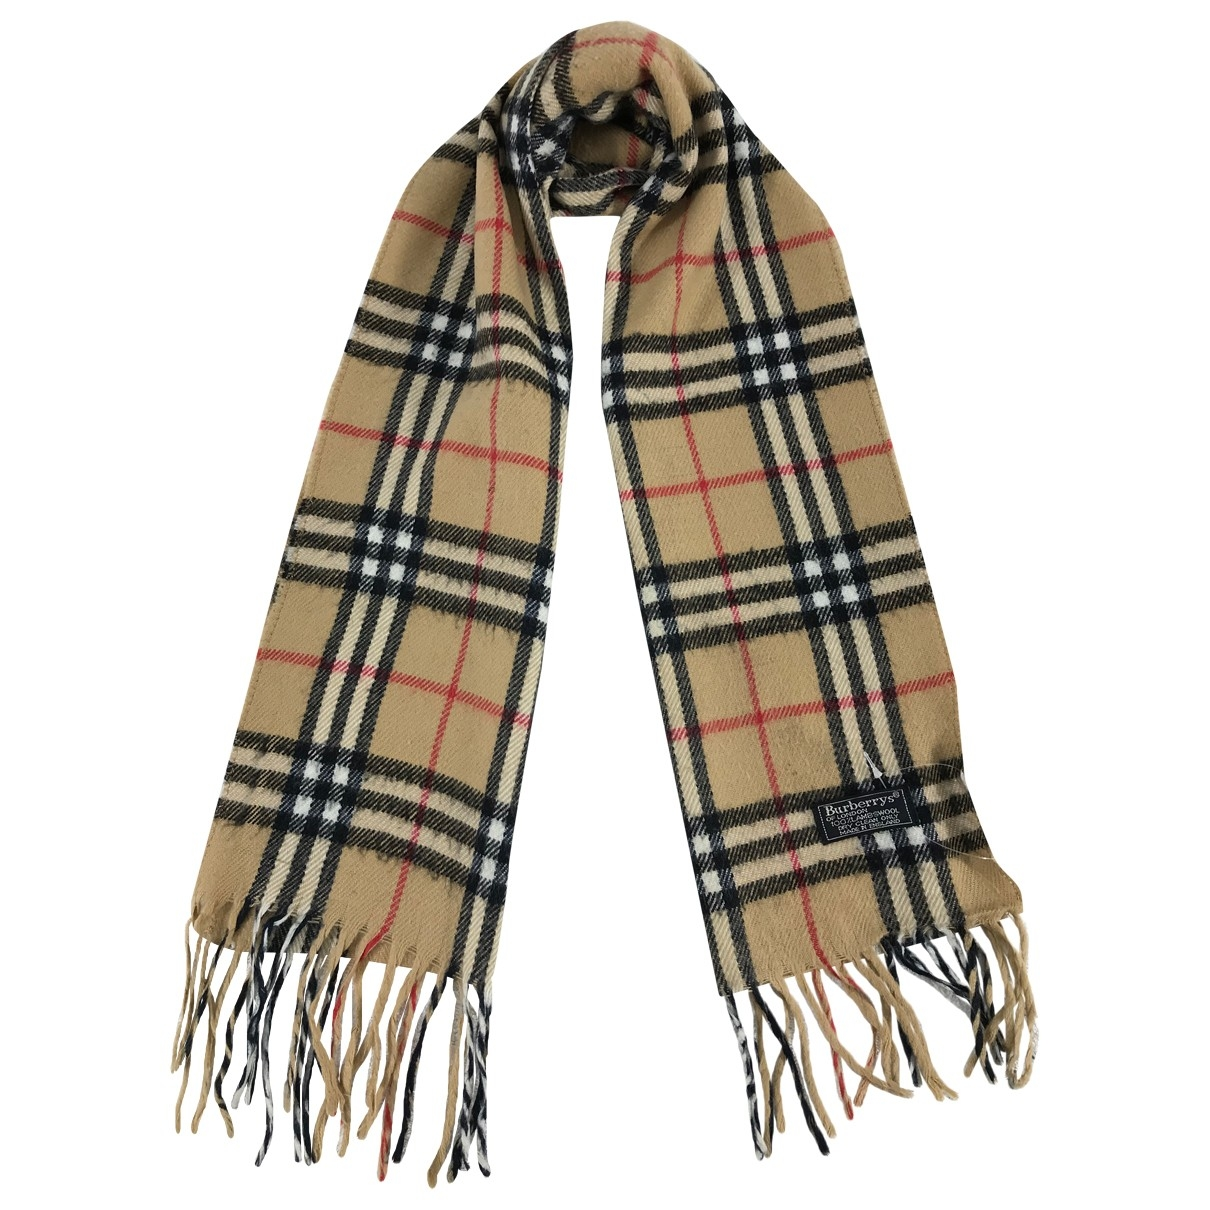 Burberry \N Schal in  Beige Wolle